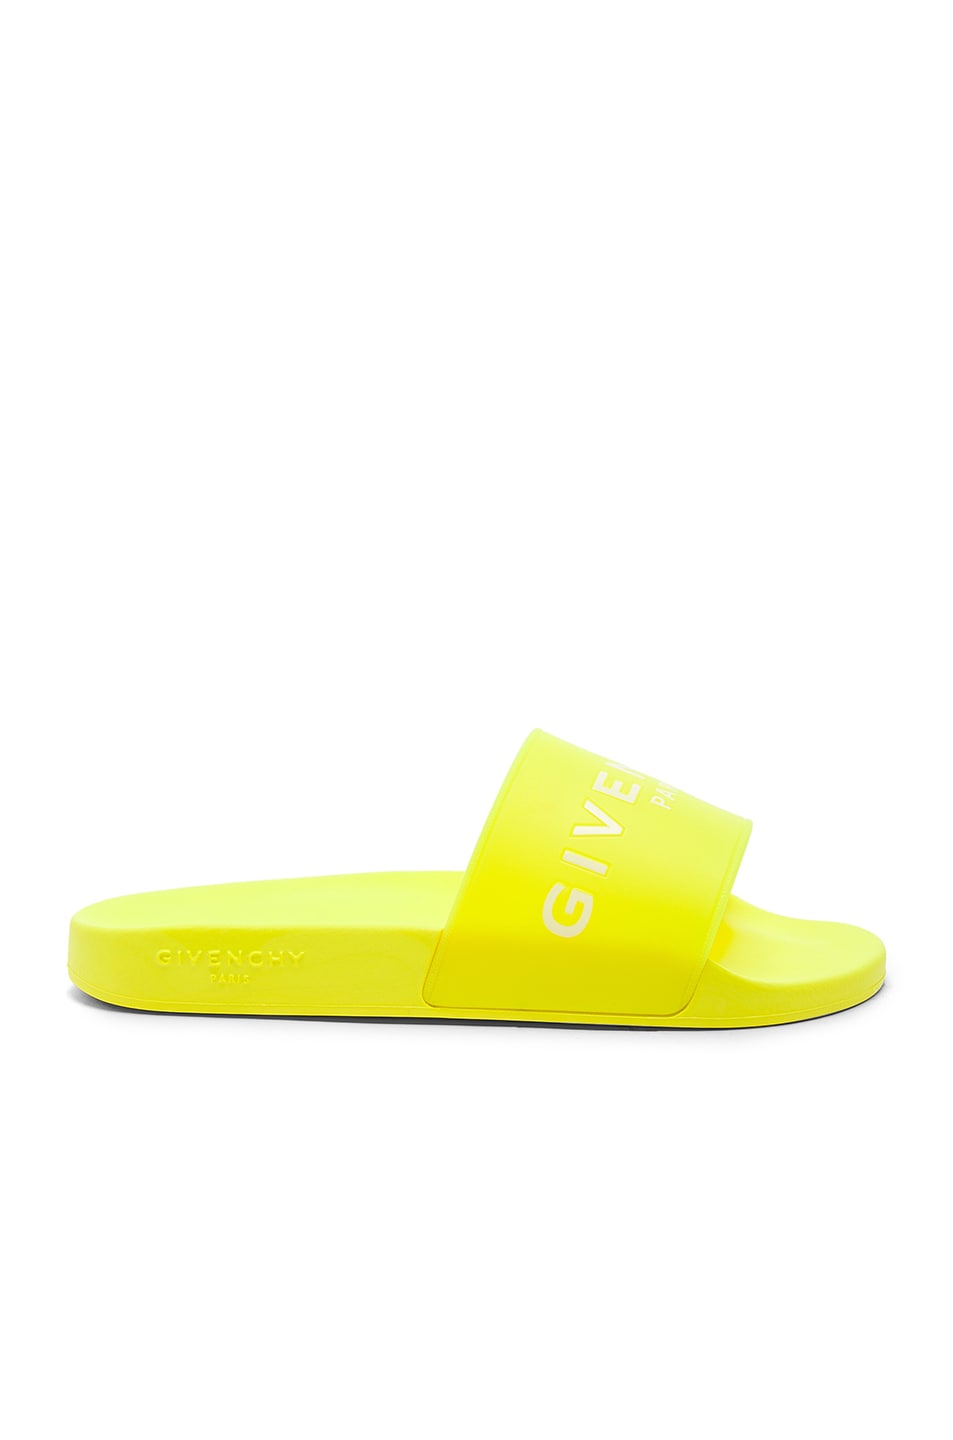 Polyurethane Slides in Yellow,Neon Givenchy